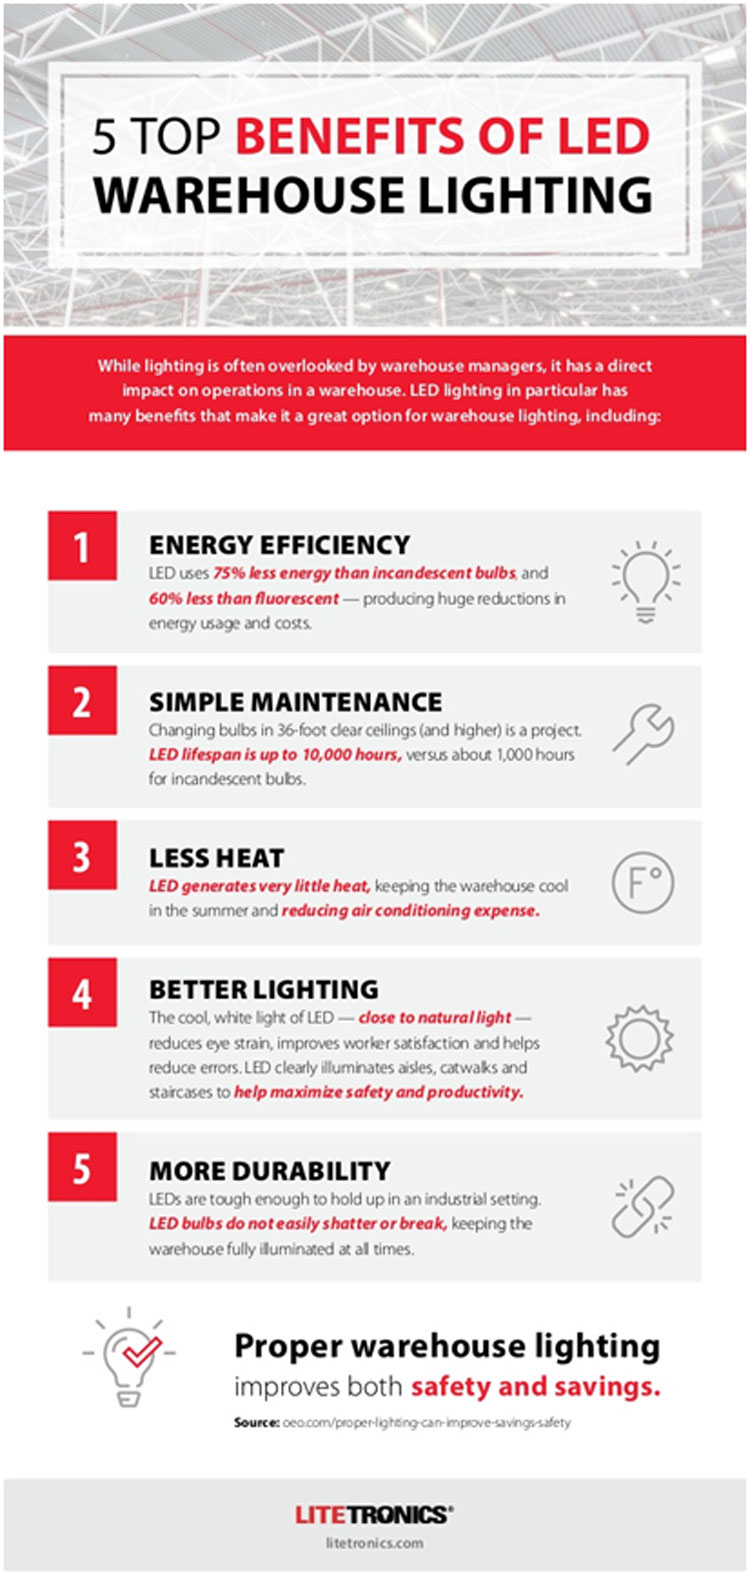 Five Top Benefits Of LED Warehouse Lighting 37